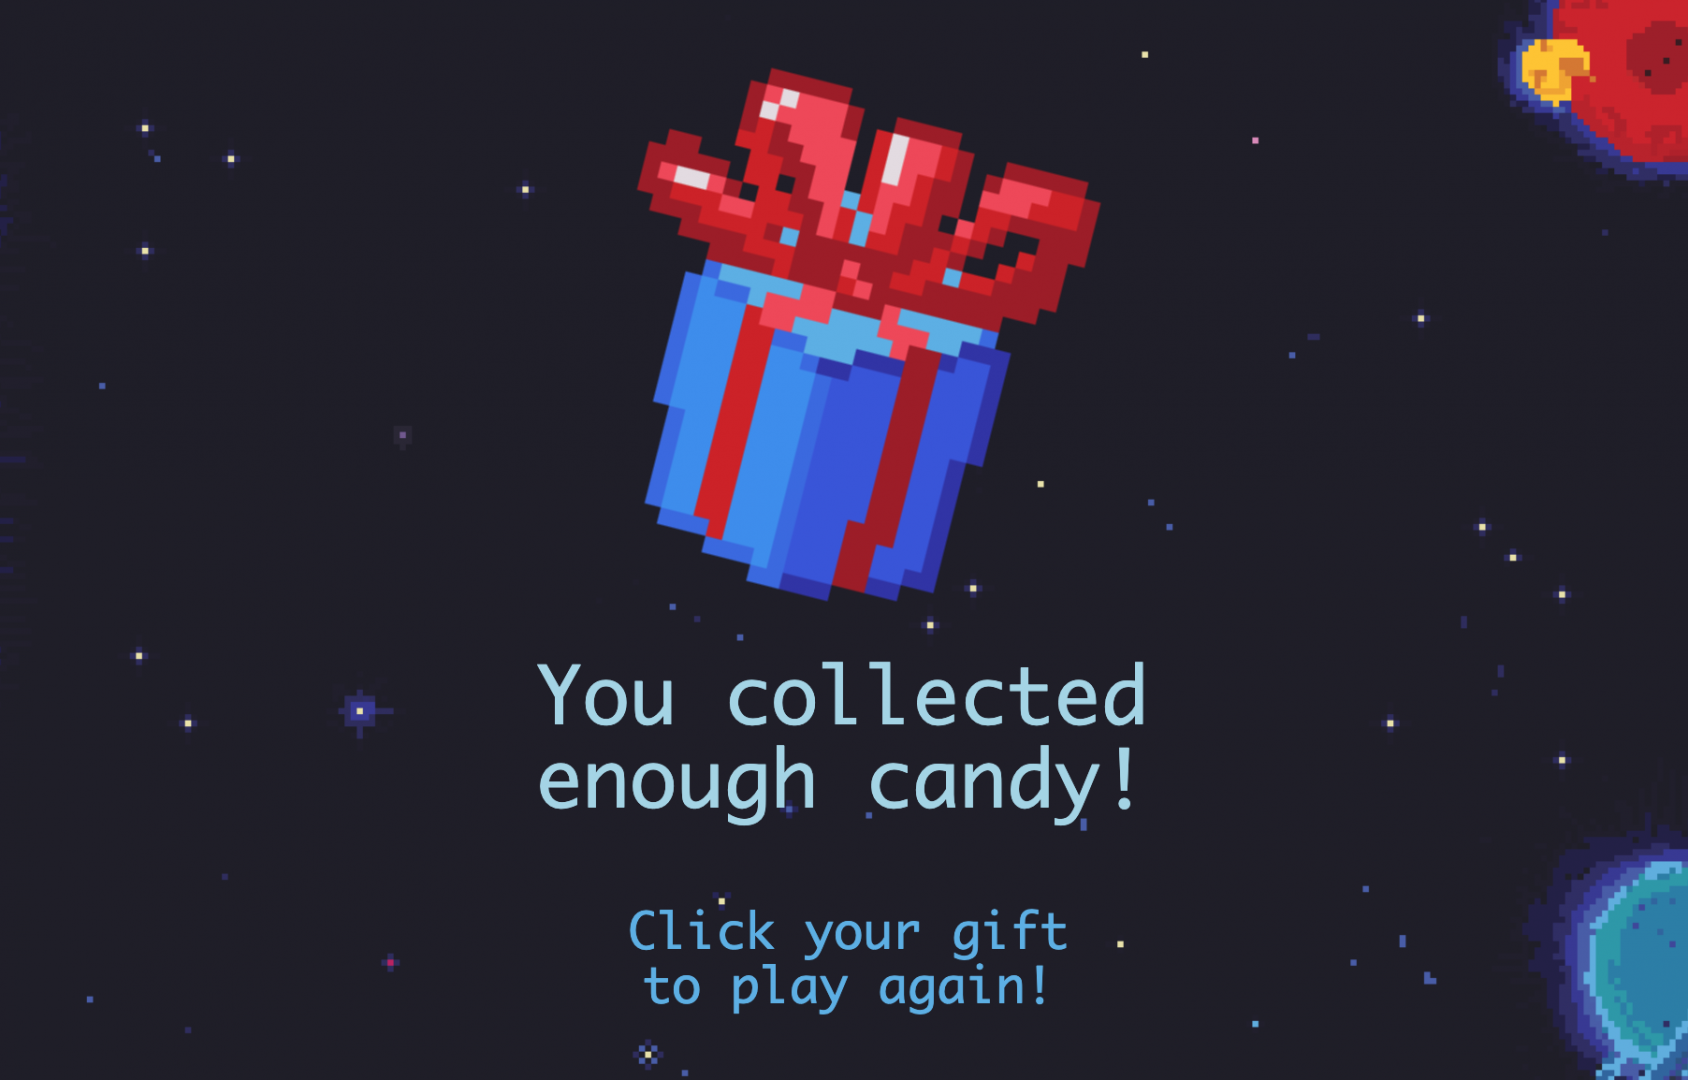 Screenshot 2 of Space Candy playable concept.